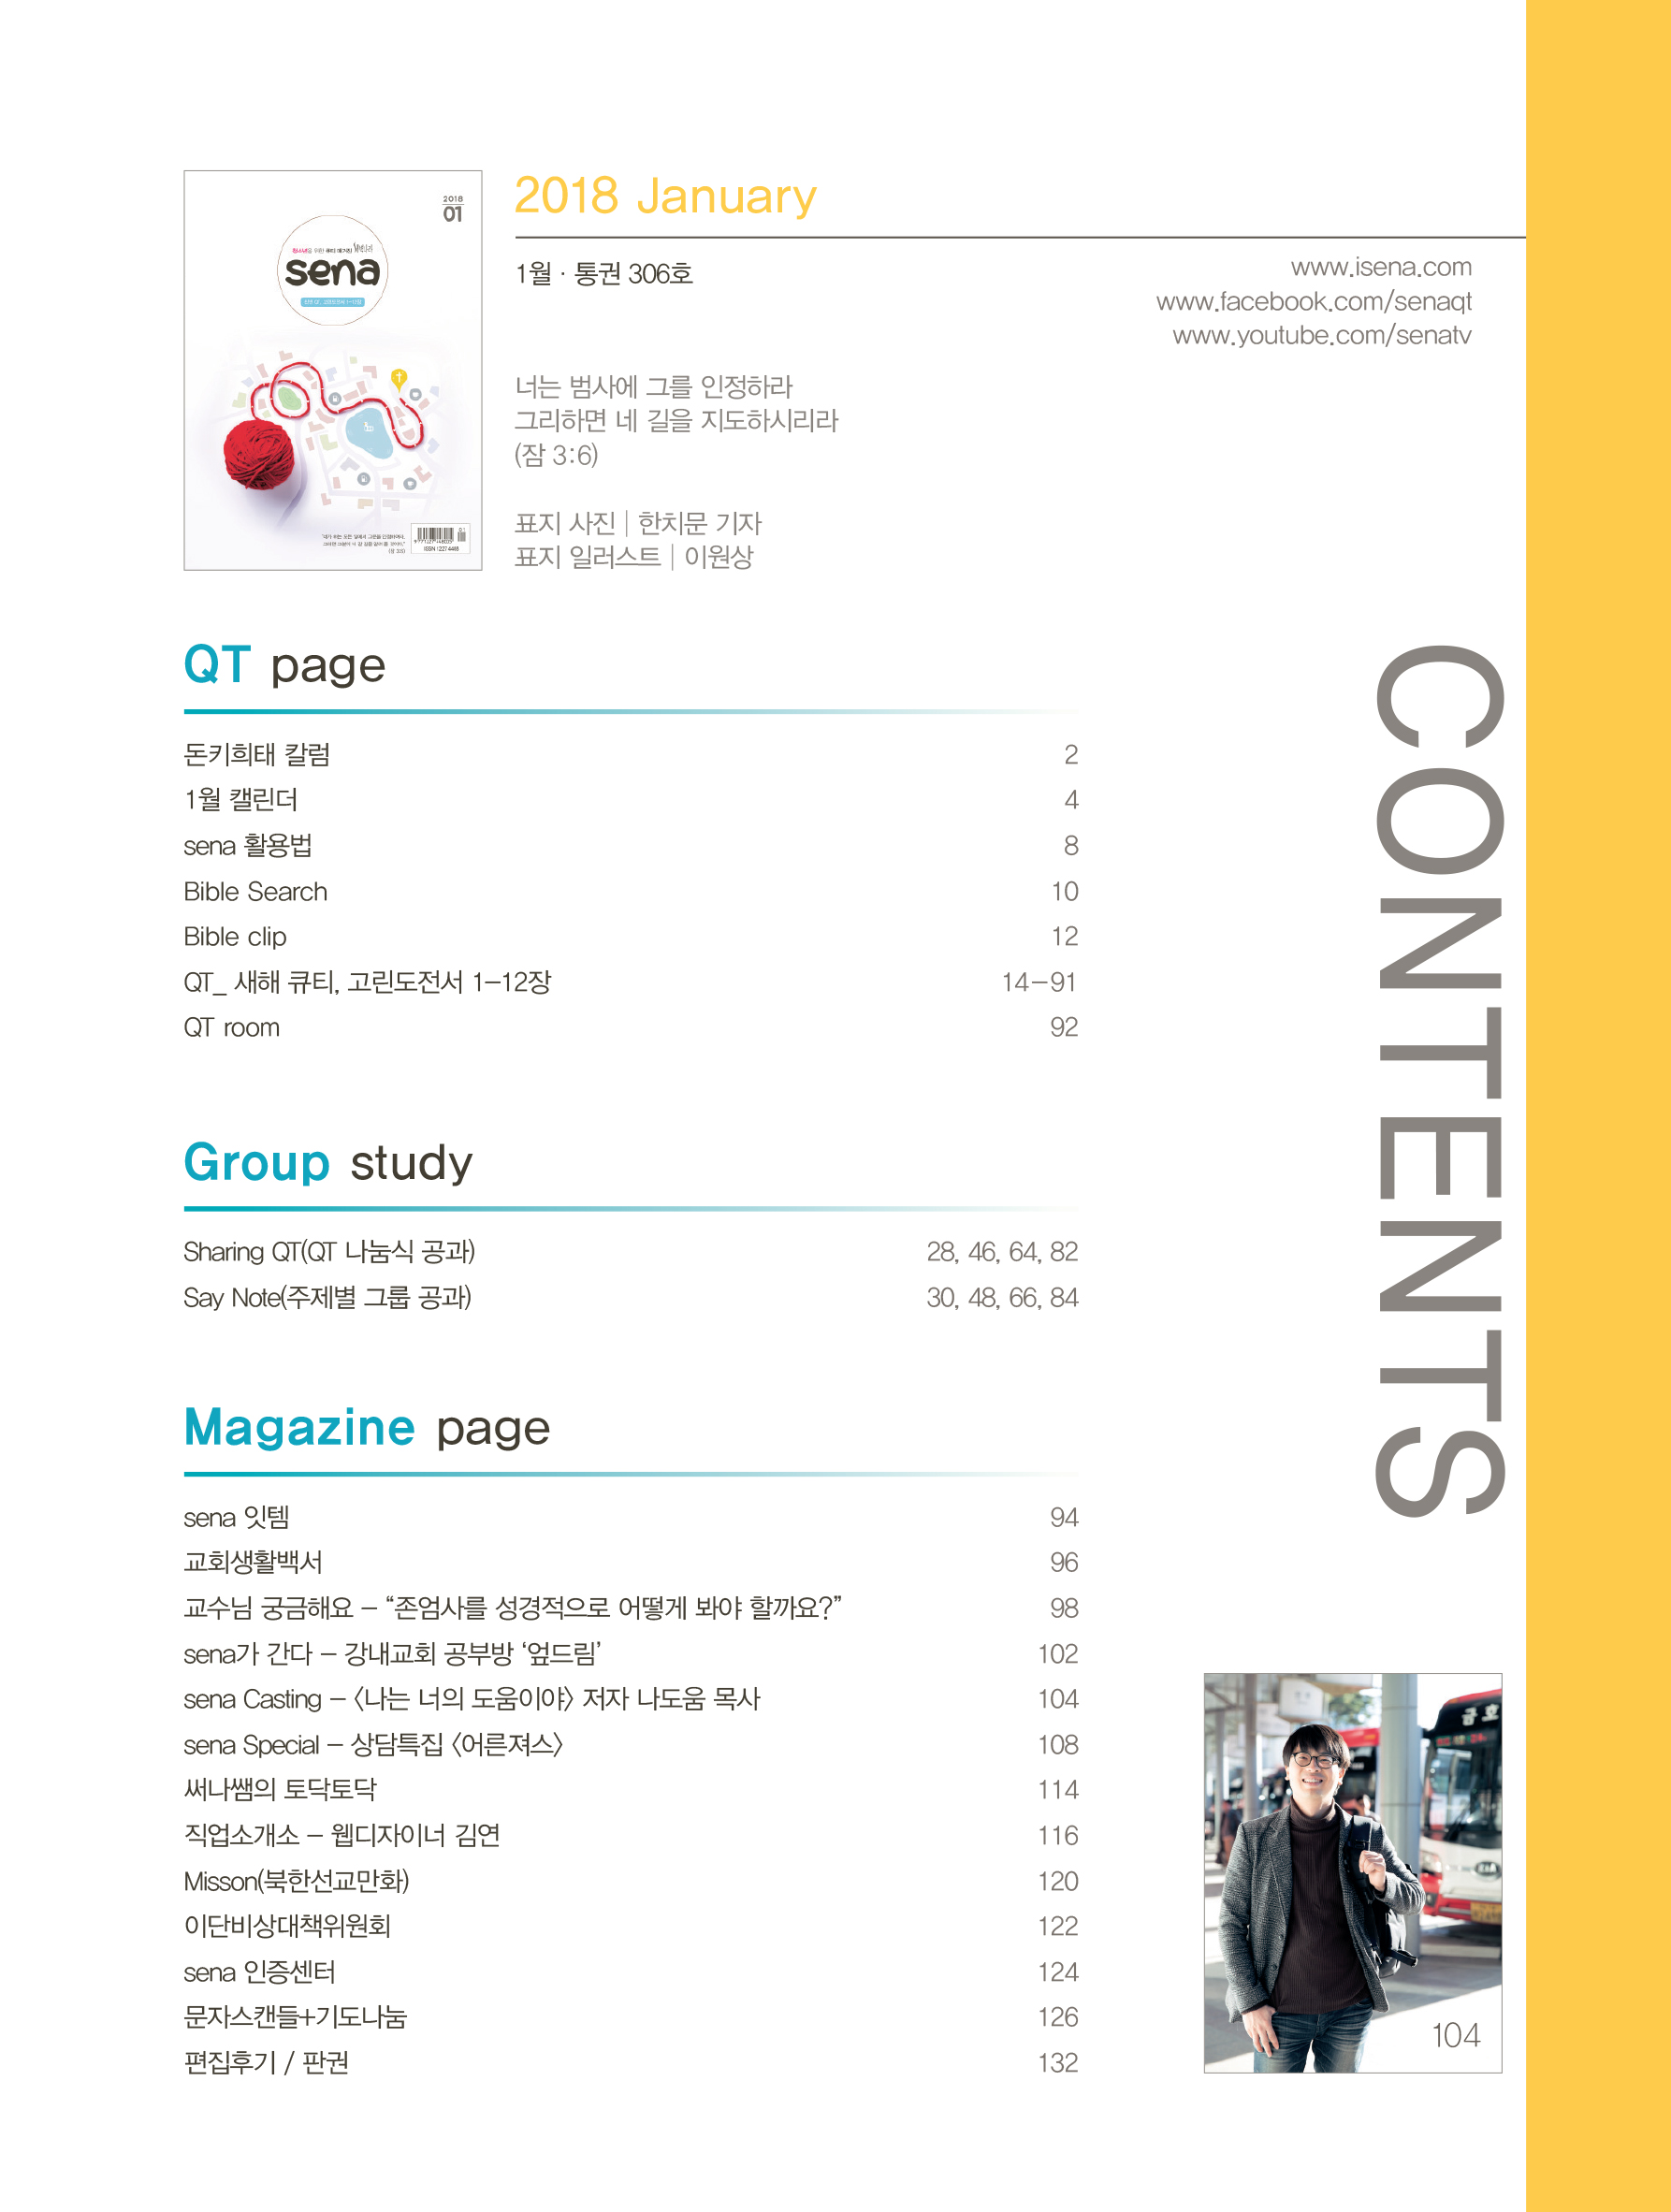 201801 contents